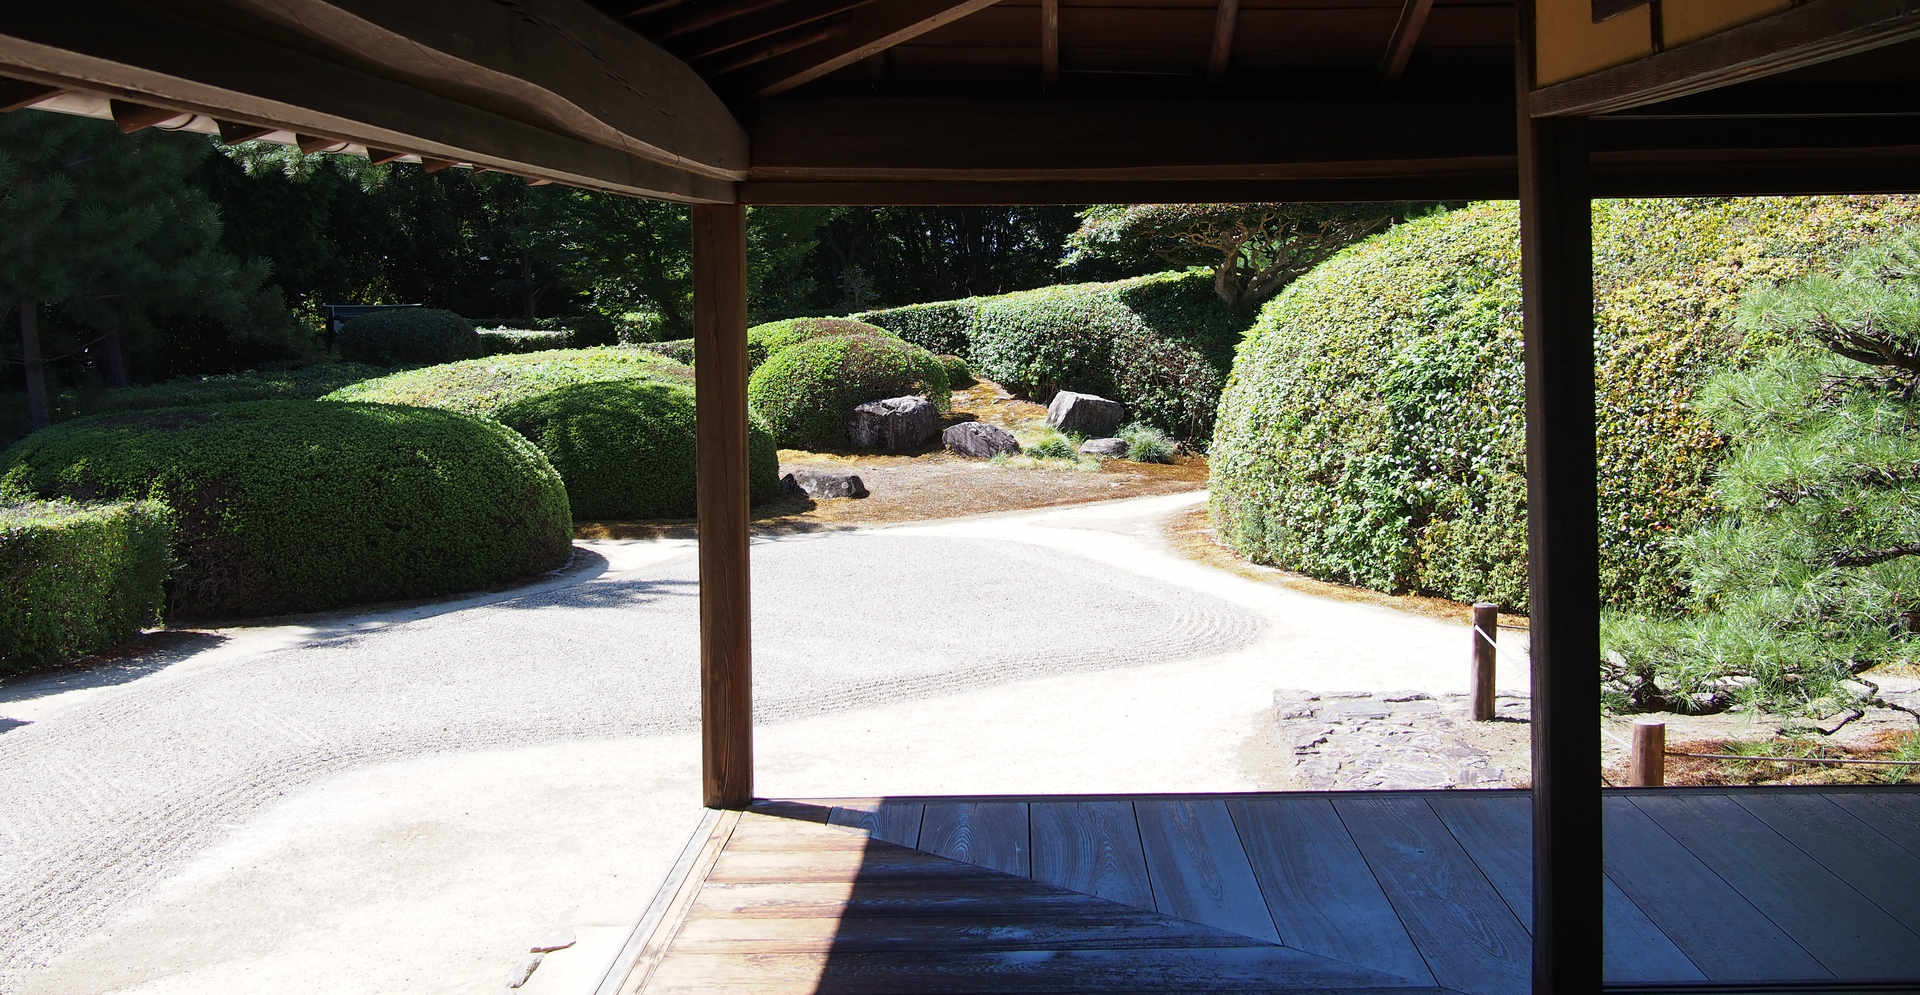 Jiko-in temple zen garden